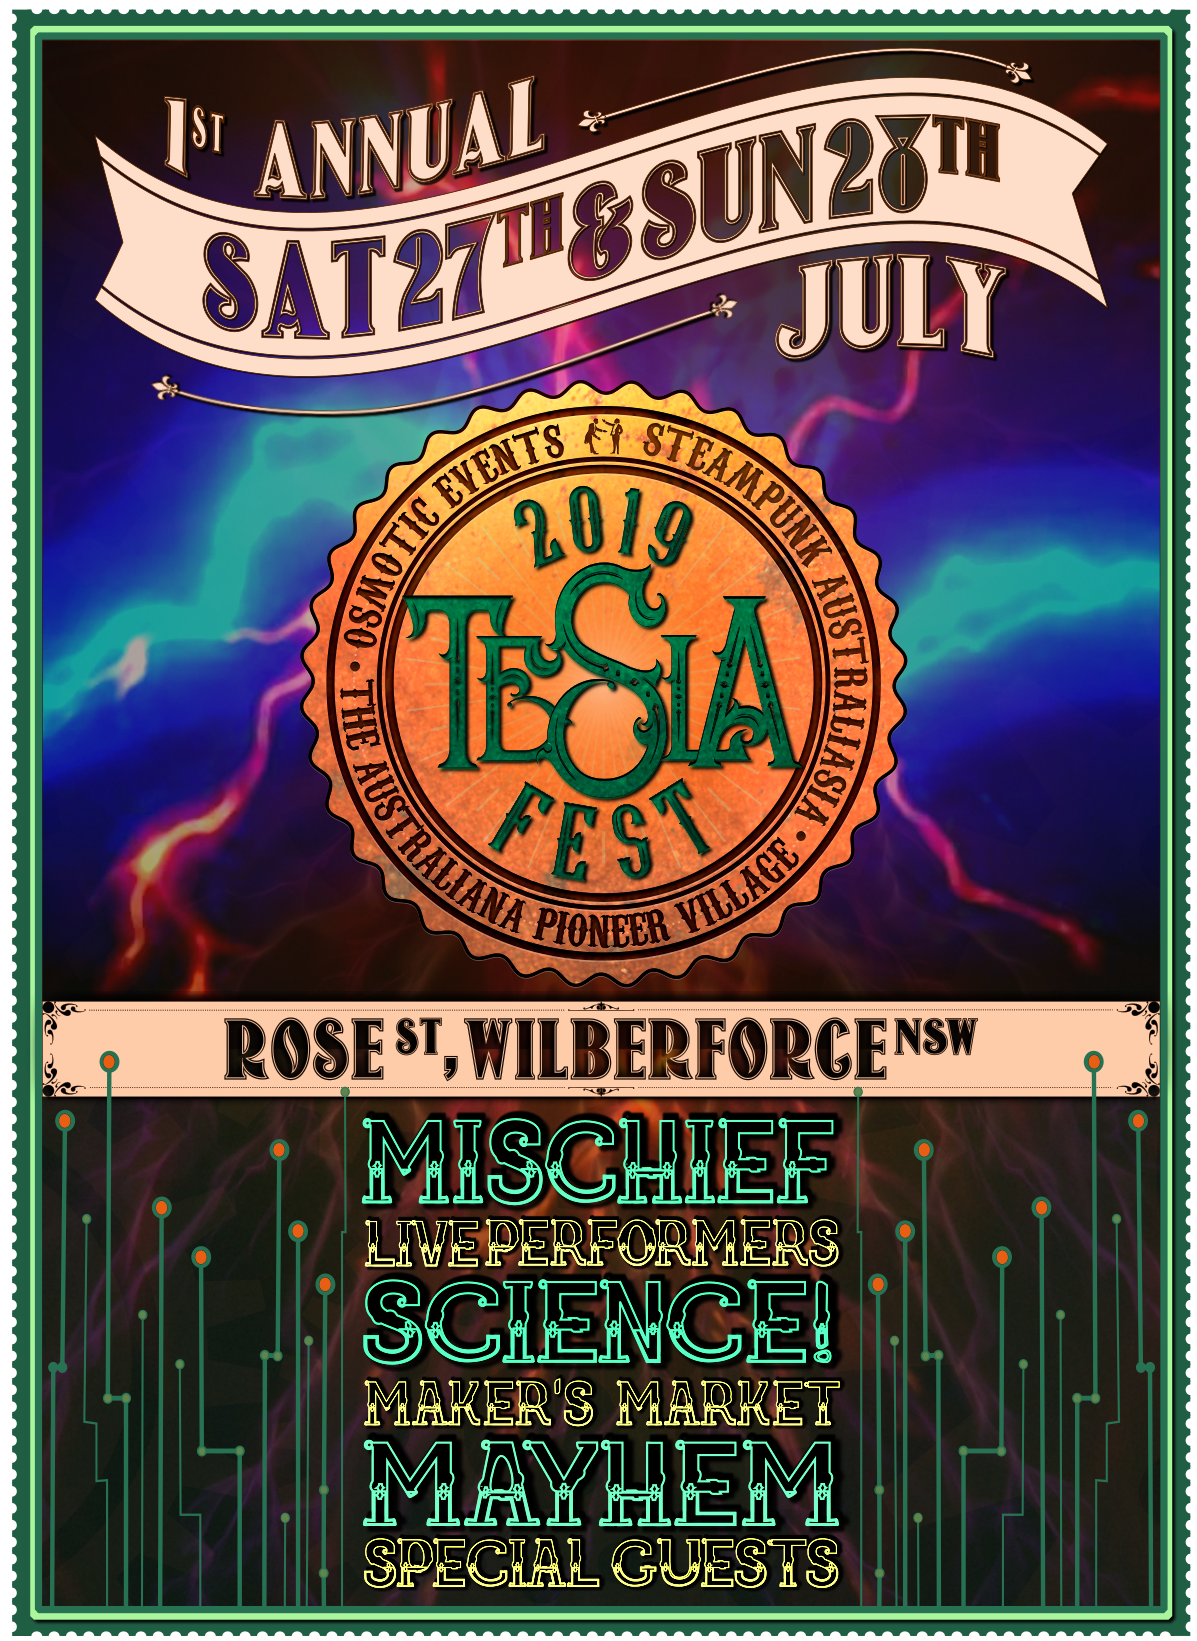 TeslaFest 2019 Announcement Poster Saturday 27th & Sunday 28th July